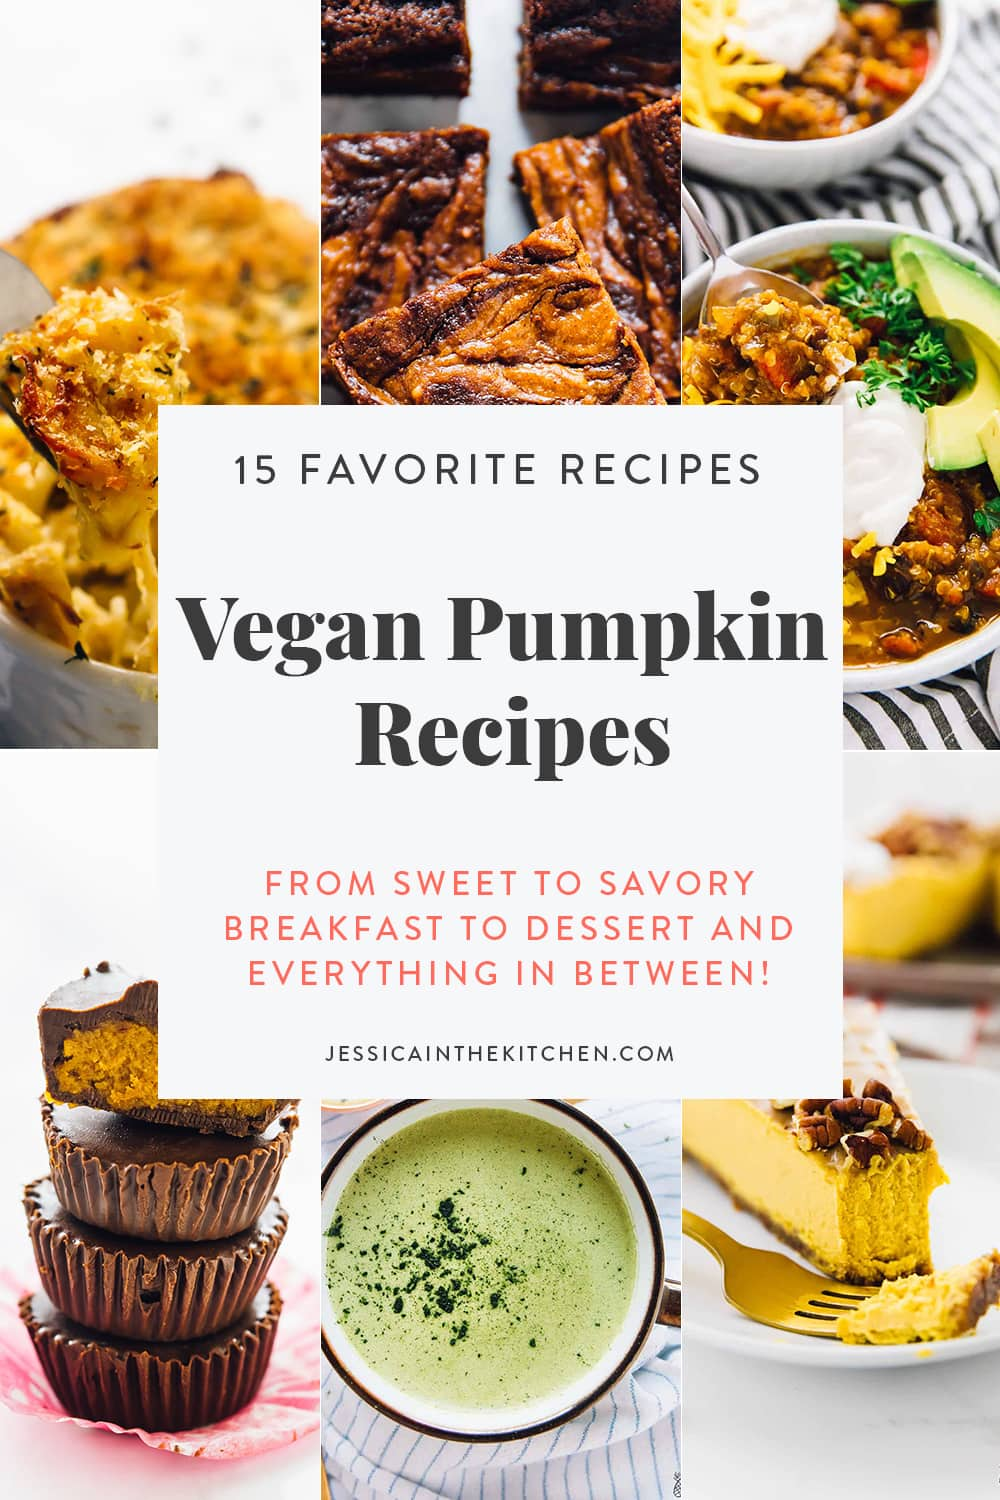 image of six photos of vegan pumpkin recipes with text for Pinterest for the sauce roundup describing the recipes